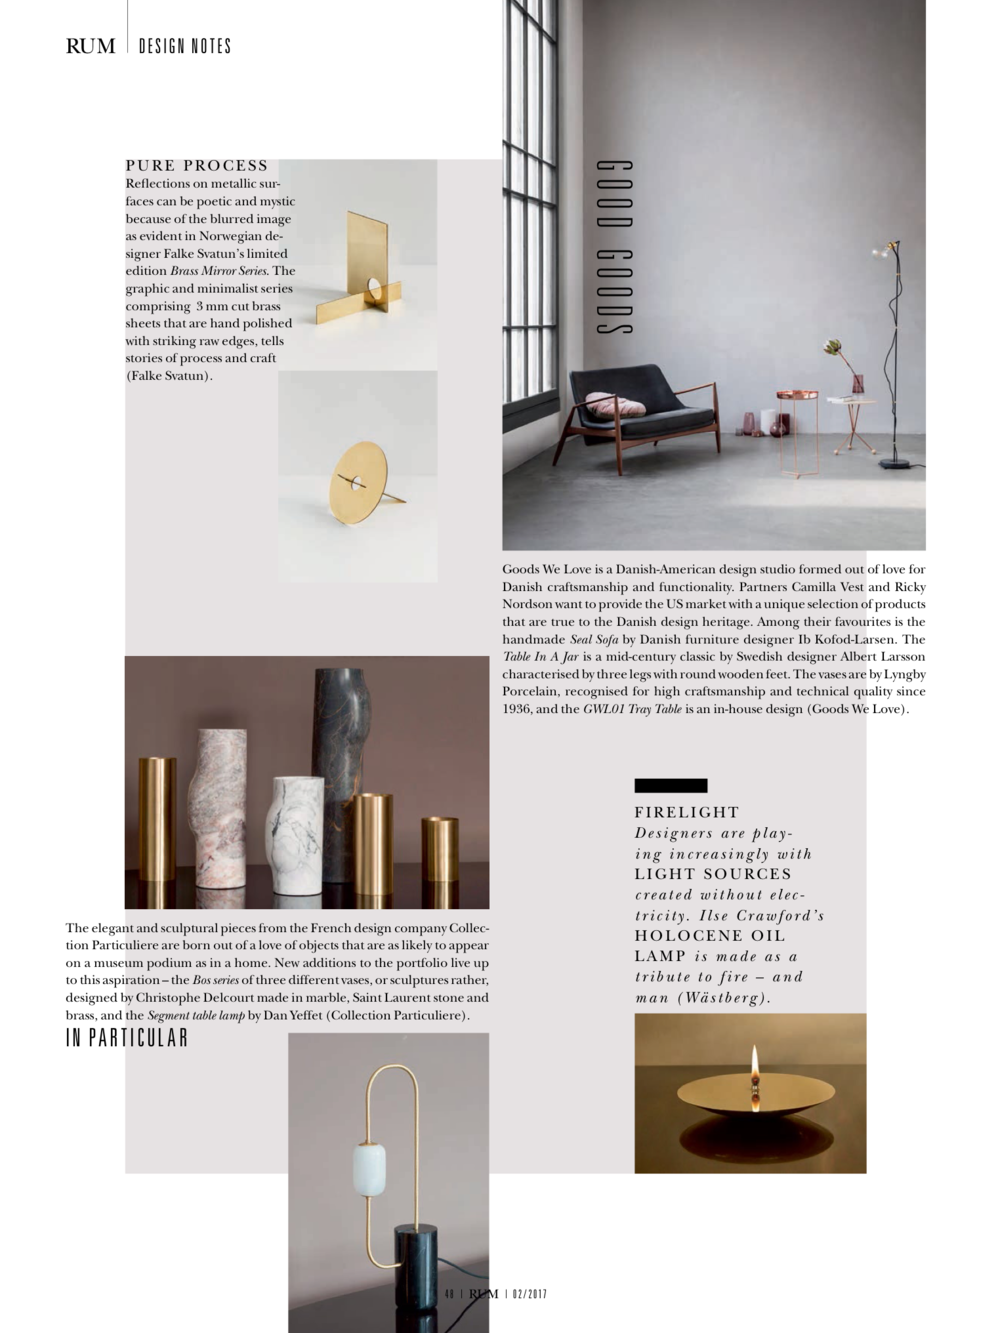 RUM International 2nd edition - Five Floor Lamp in Design Notes.